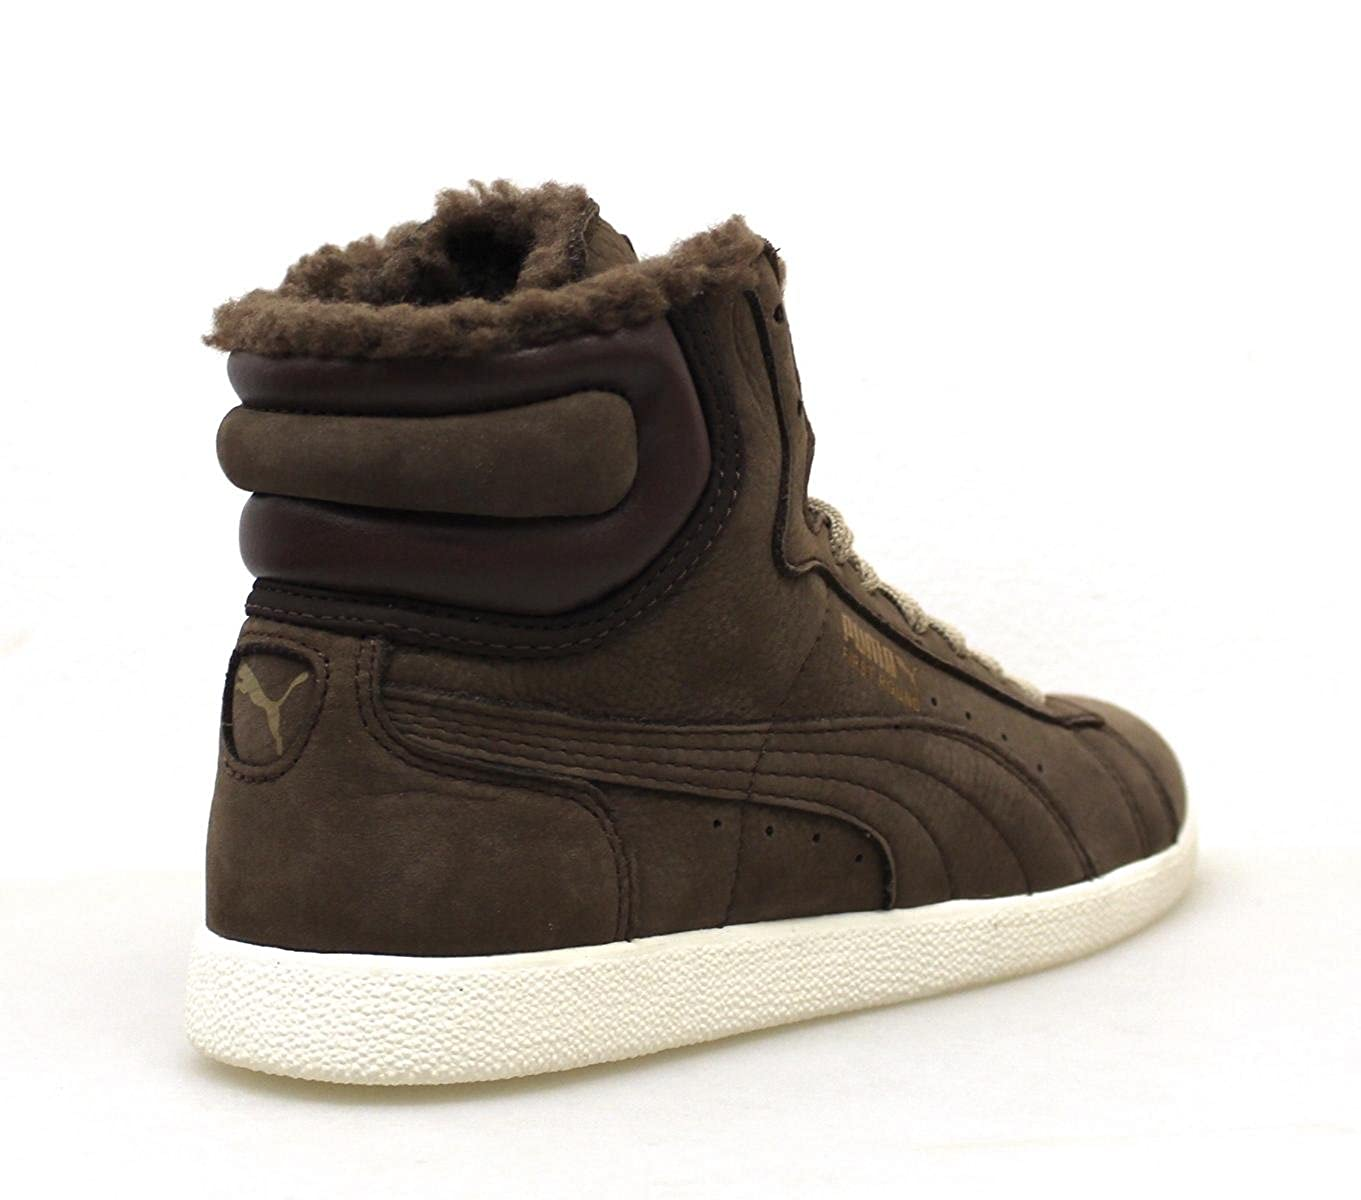 Puma First Round Worker WN's 350880 11 Damen Winter High Top Sneaker Gefüttert